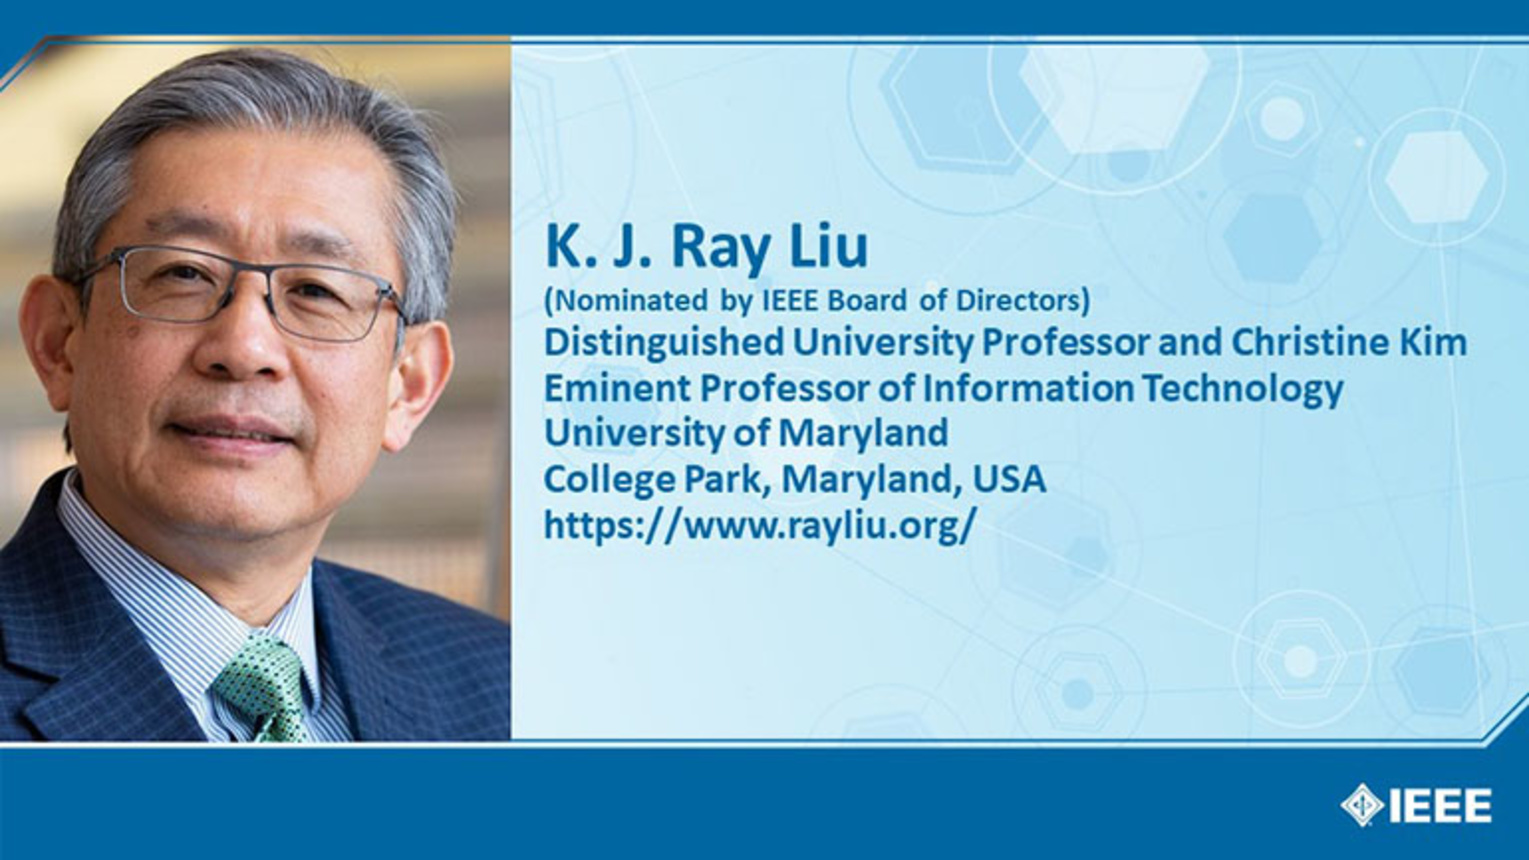 K. J. Ray Liu - Candidate, IEEE President-Elect 2021